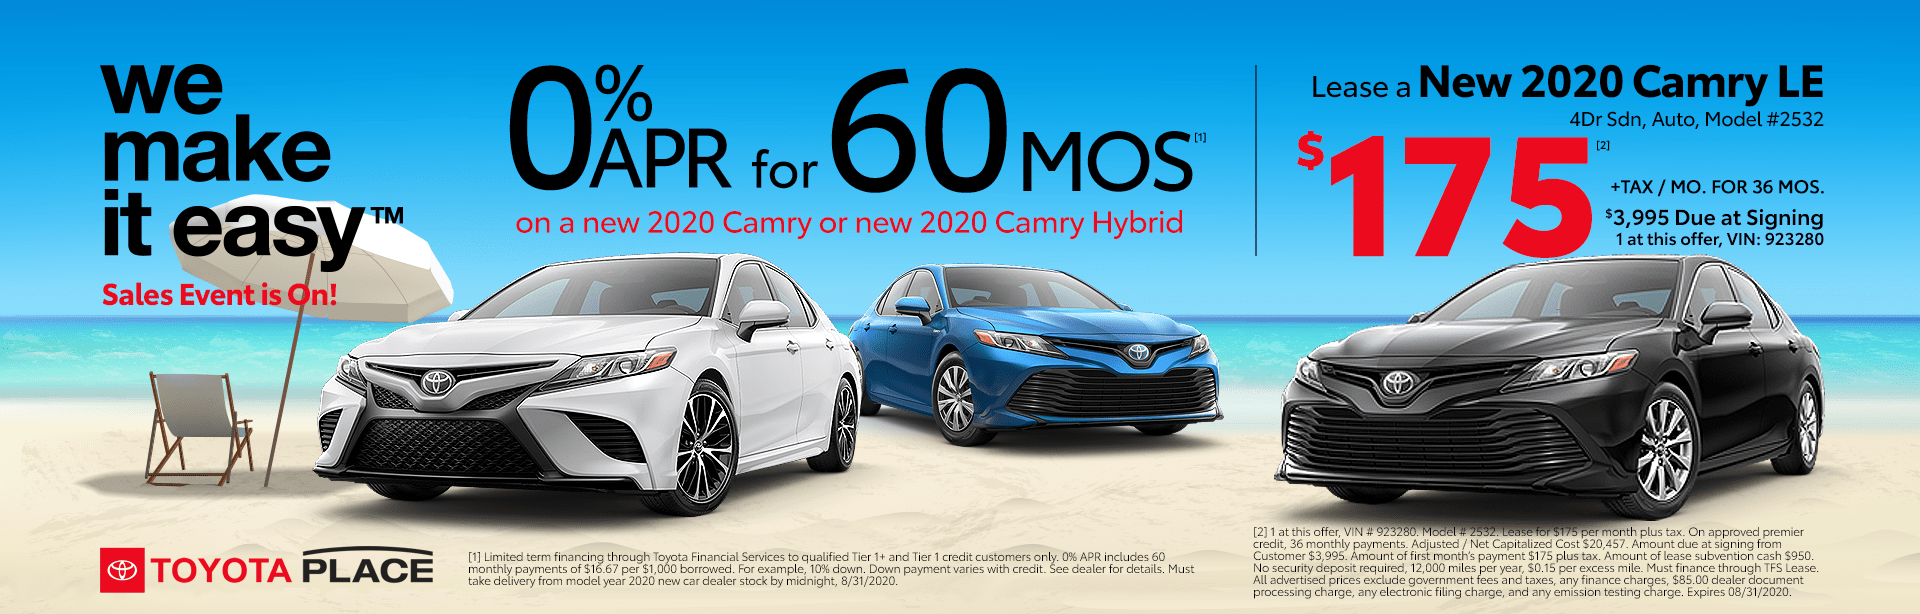 Toyota Camry Specials in Orange County